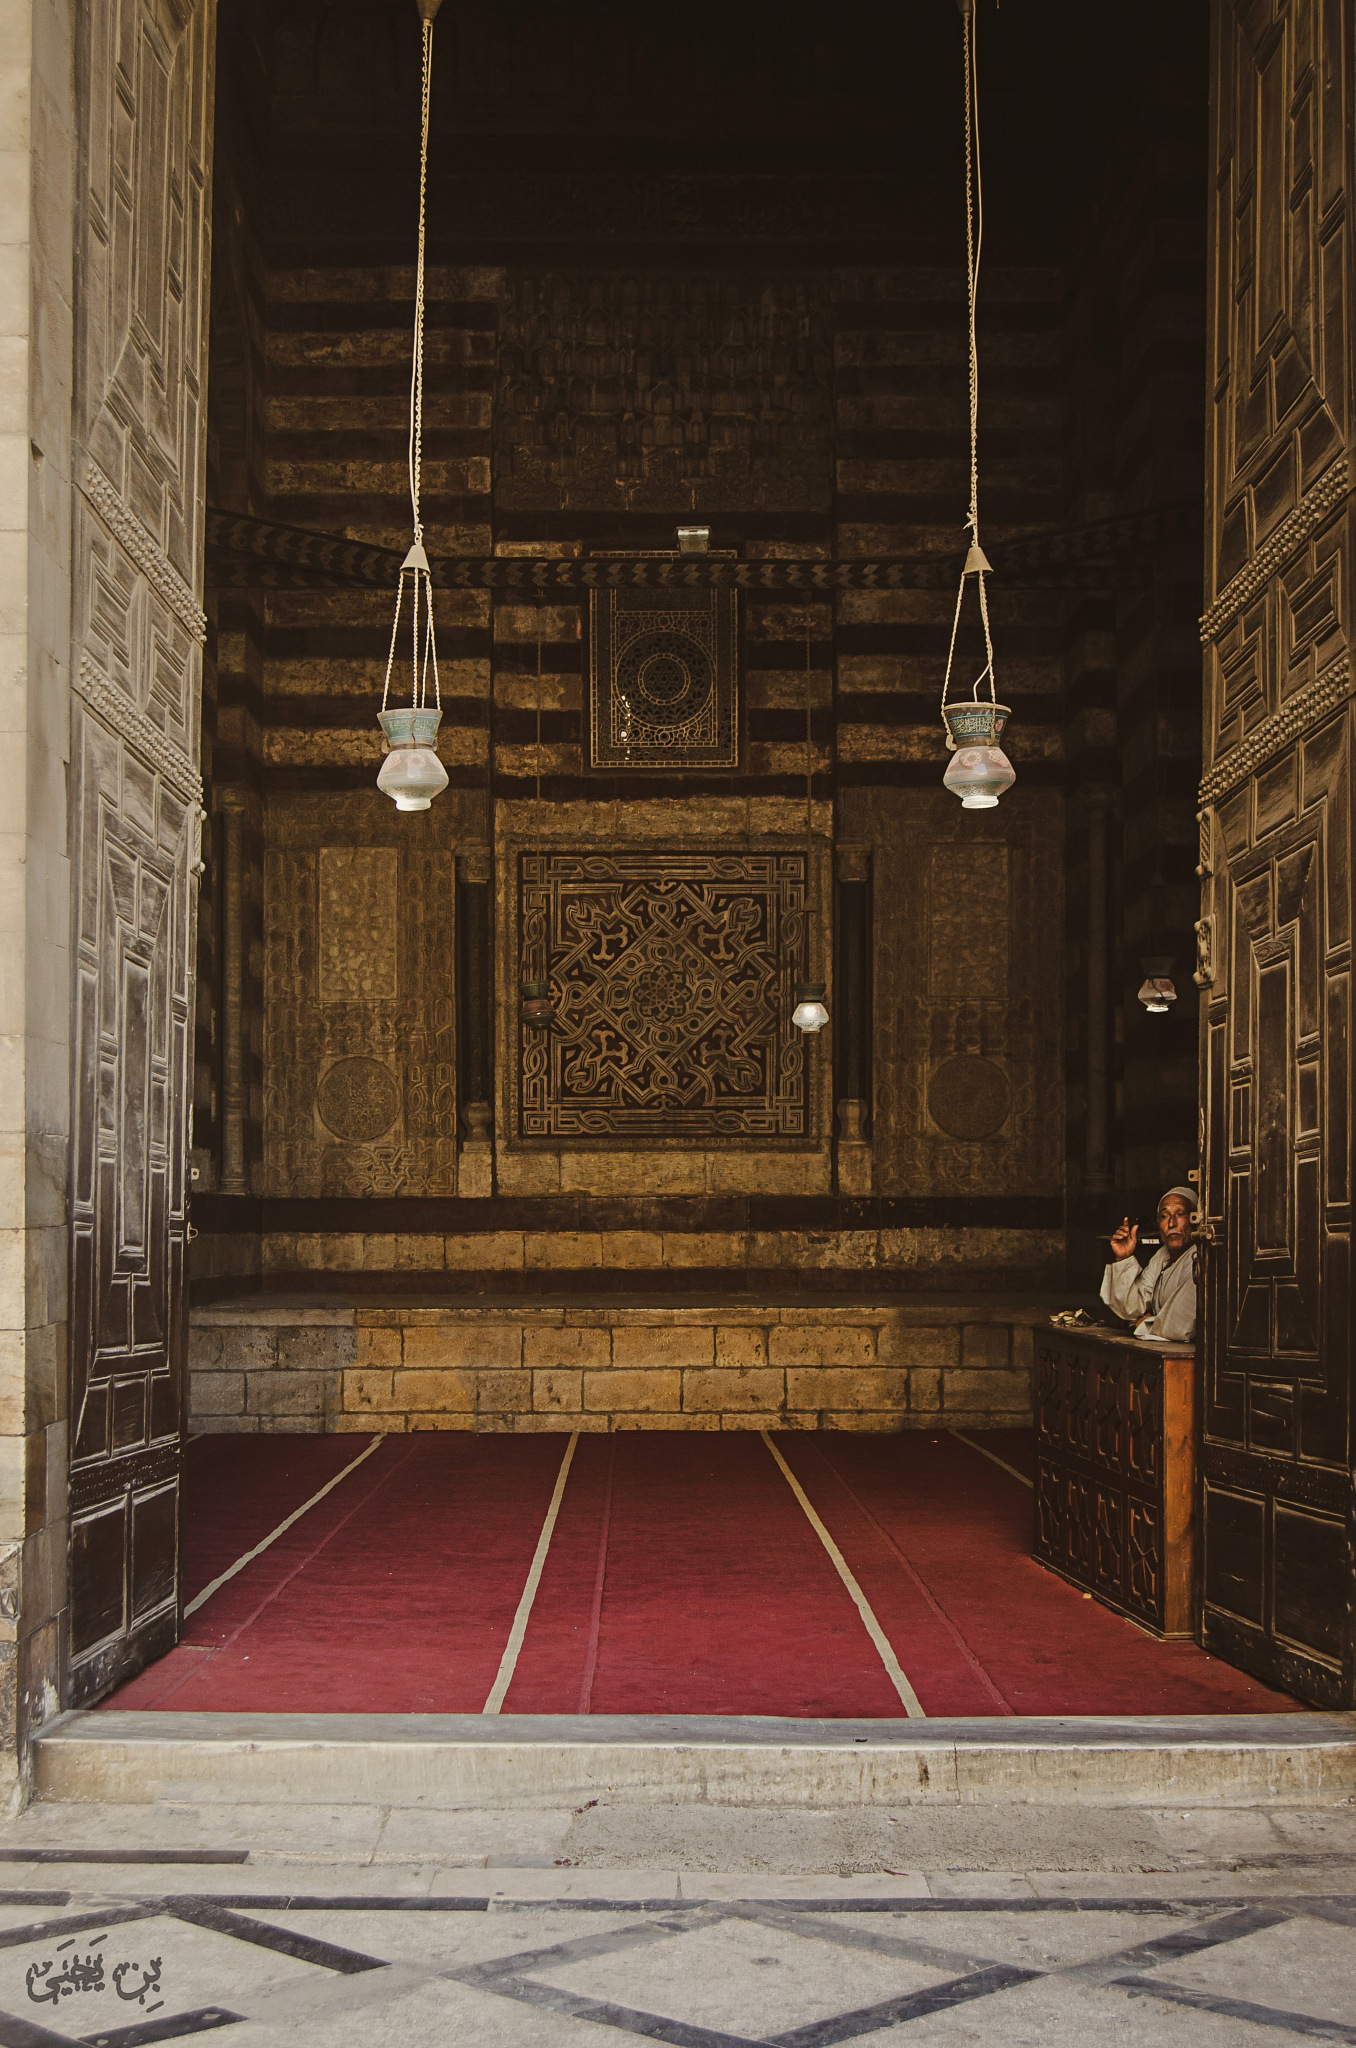 Mosque gate by Eslam Yahia